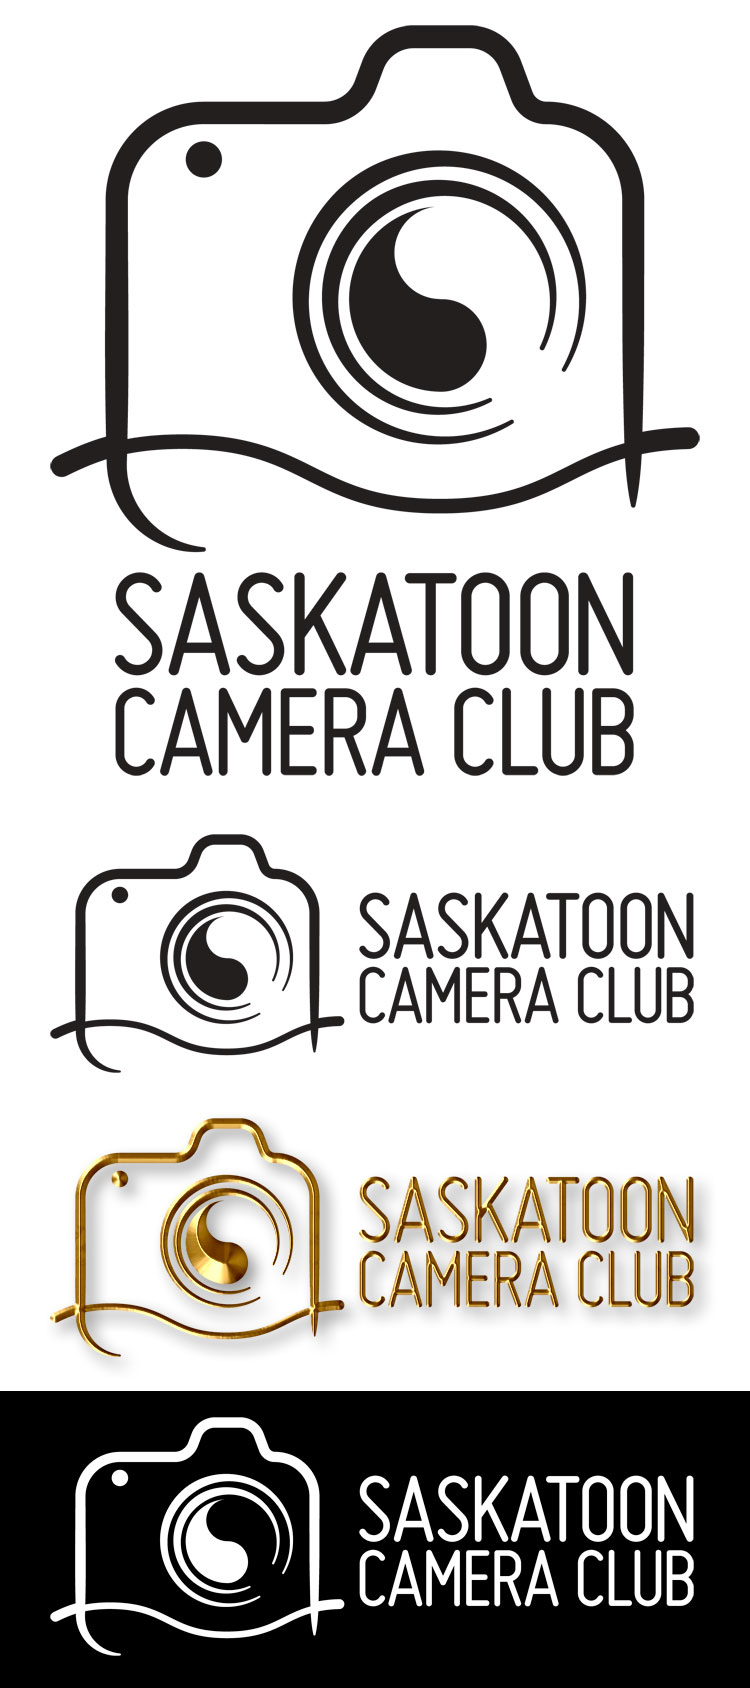 Saskatoon Camera Club logo with variations